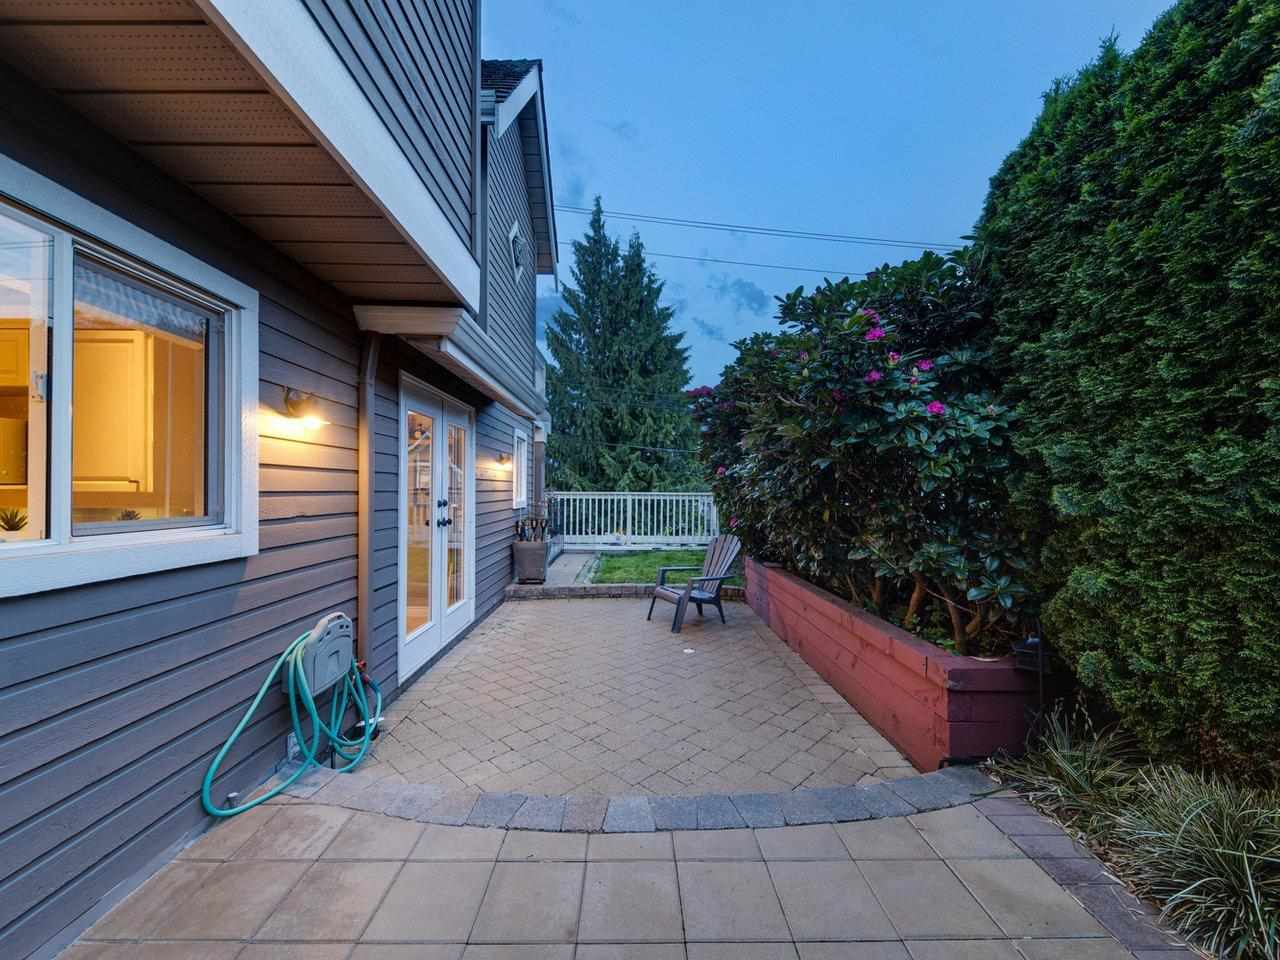 515 ST. ANDREWS AVENUE - Lower Lonsdale Townhouse for sale, 3 Bedrooms (R2590362) - #9